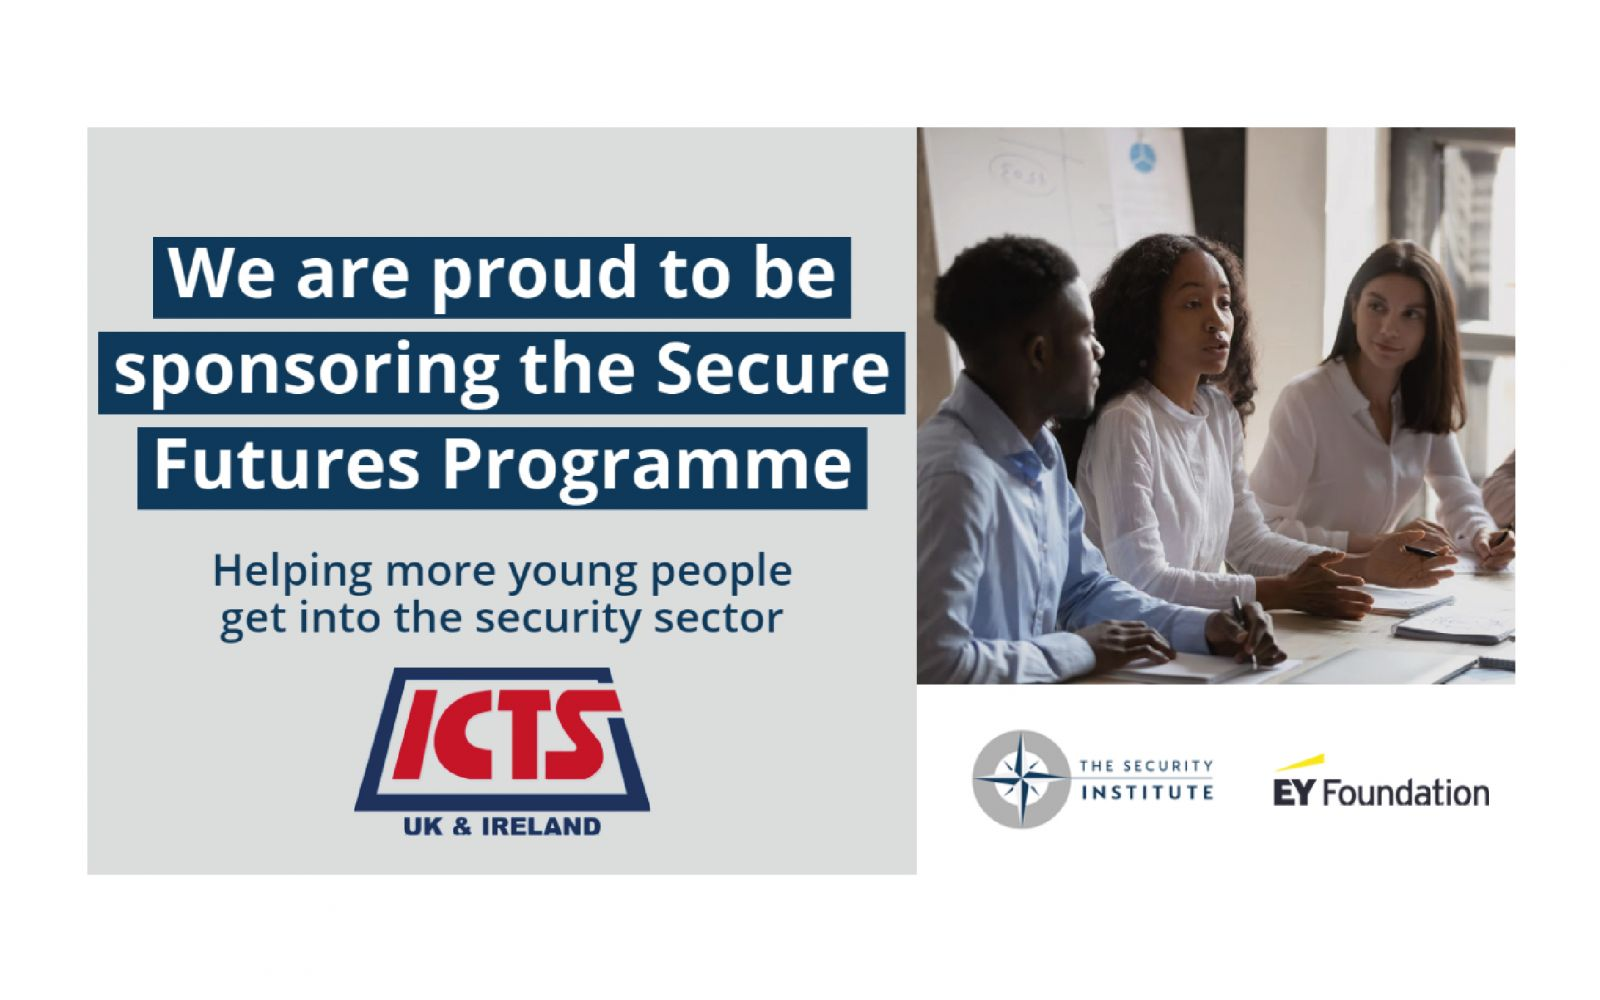 ICTS UK & Ireland is proud to sponsor the 'Secure Futures Programme'